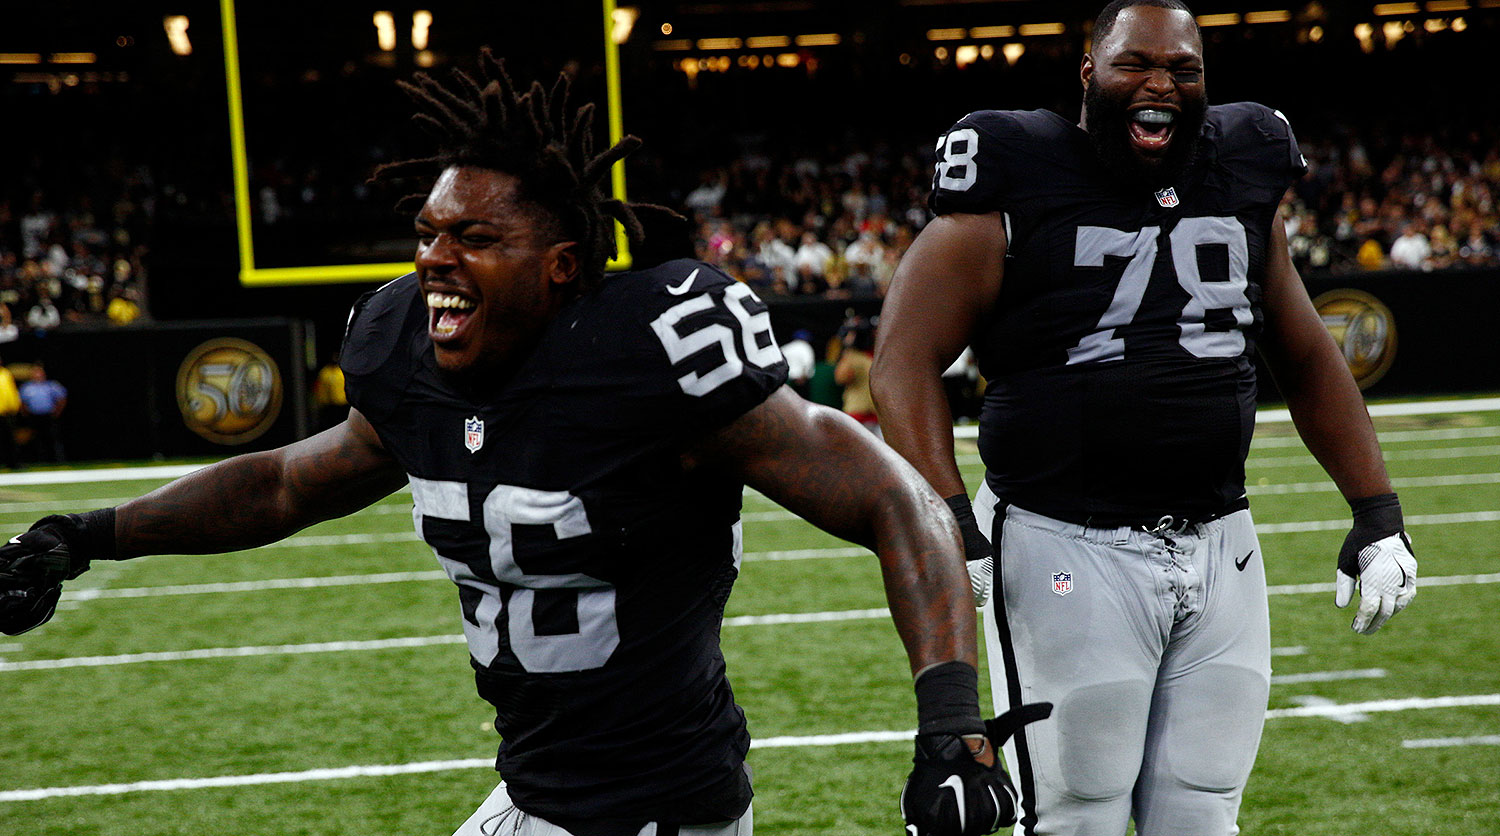 Del Rio's risky two-point conversion call paid off with a season-opening road win in New Orleans that jump-started the Raiders.